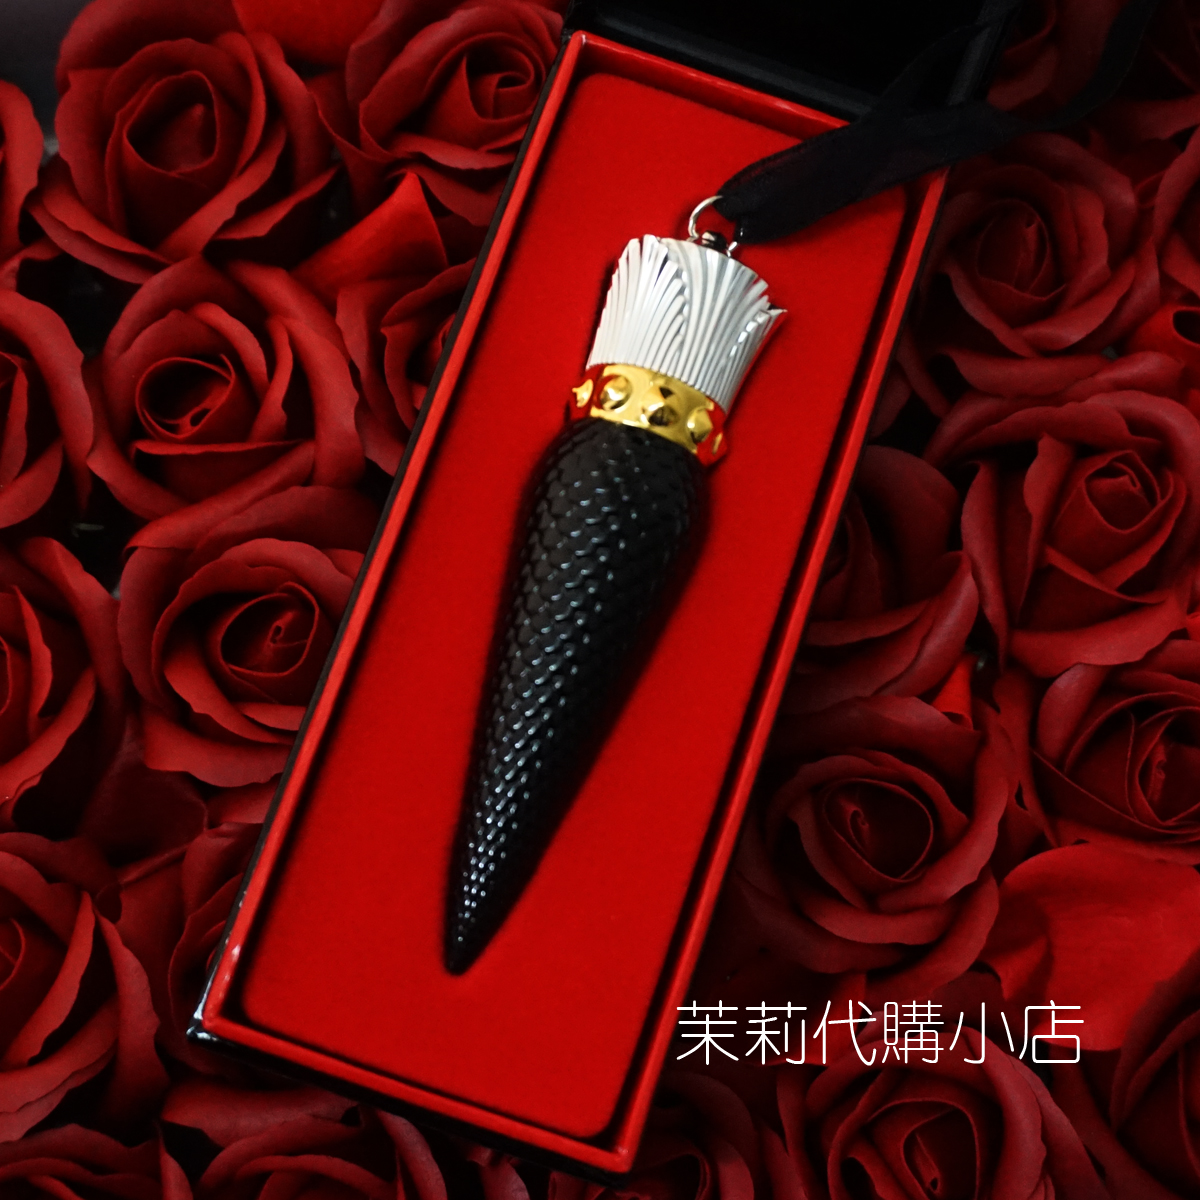 10989c2325a Spot Christian Louboutin CL mouth carrot black pipe lipstick 001m 001S ·  Zoom · lightbox moreview · lightbox moreview · lightbox moreview ...